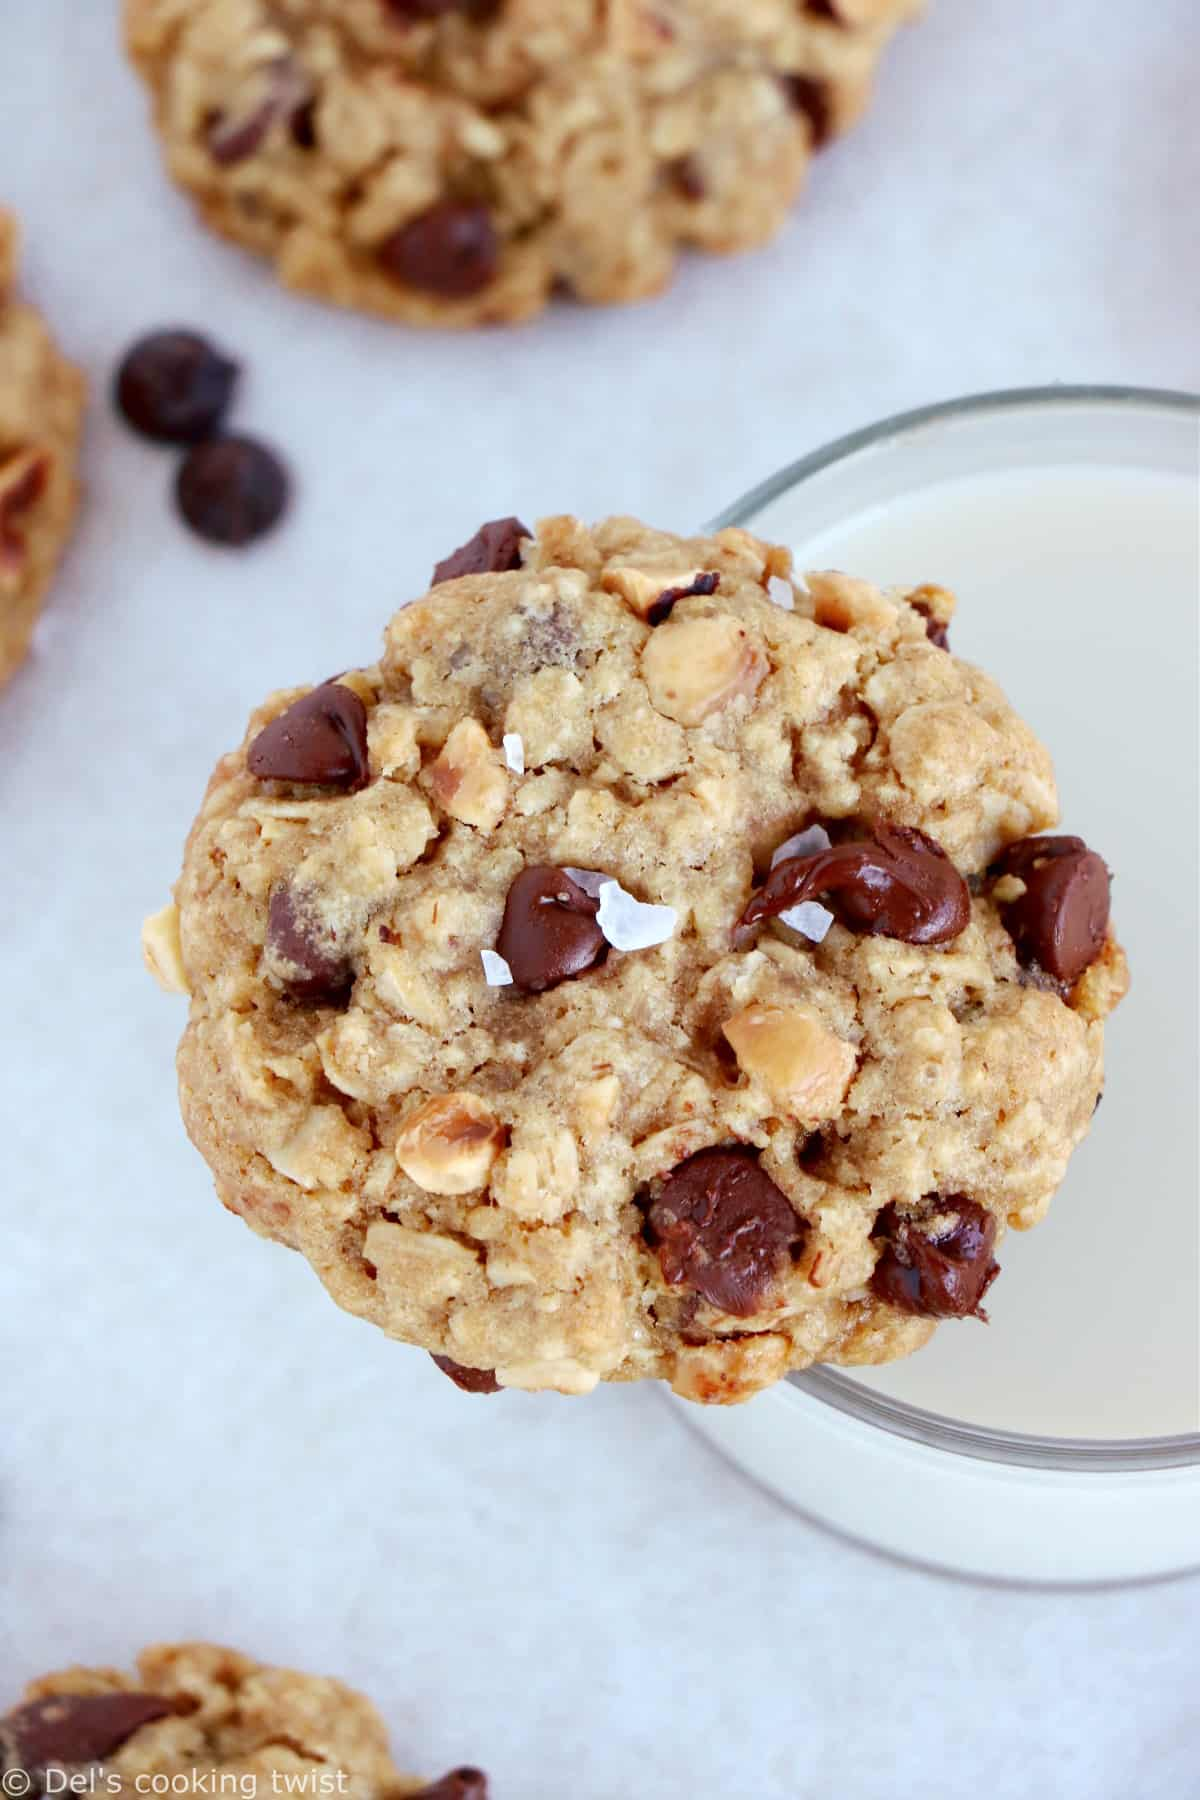 Simple chocolate chip oatmeal cookies with hazelnuts are perfect bakery-style cookies. They are easy to make, with old fashioned oats, chocolate chips and chopped hazelnuts.